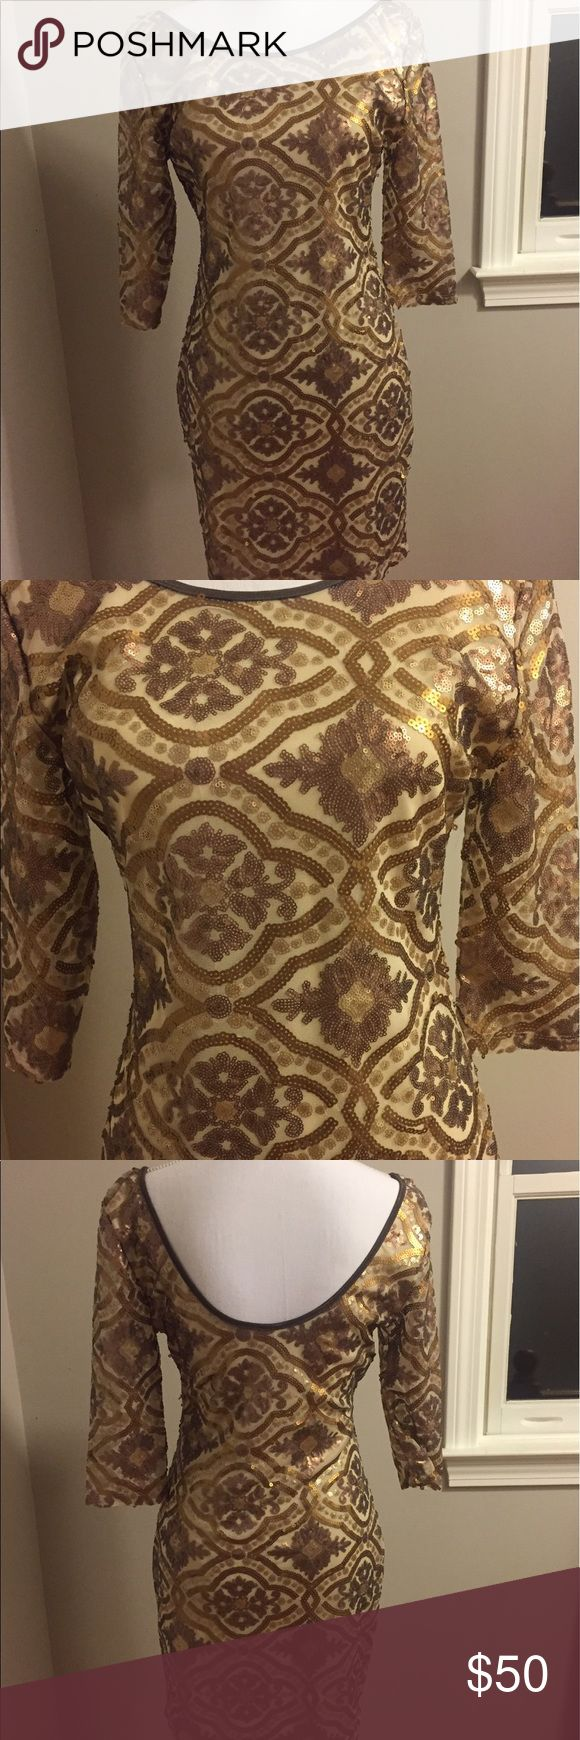 Lulus gold sequin dress size L Lulus gold sequin dress size l. Low back, beautiful pattern. Never worn, no tags. Lulu's Dresses